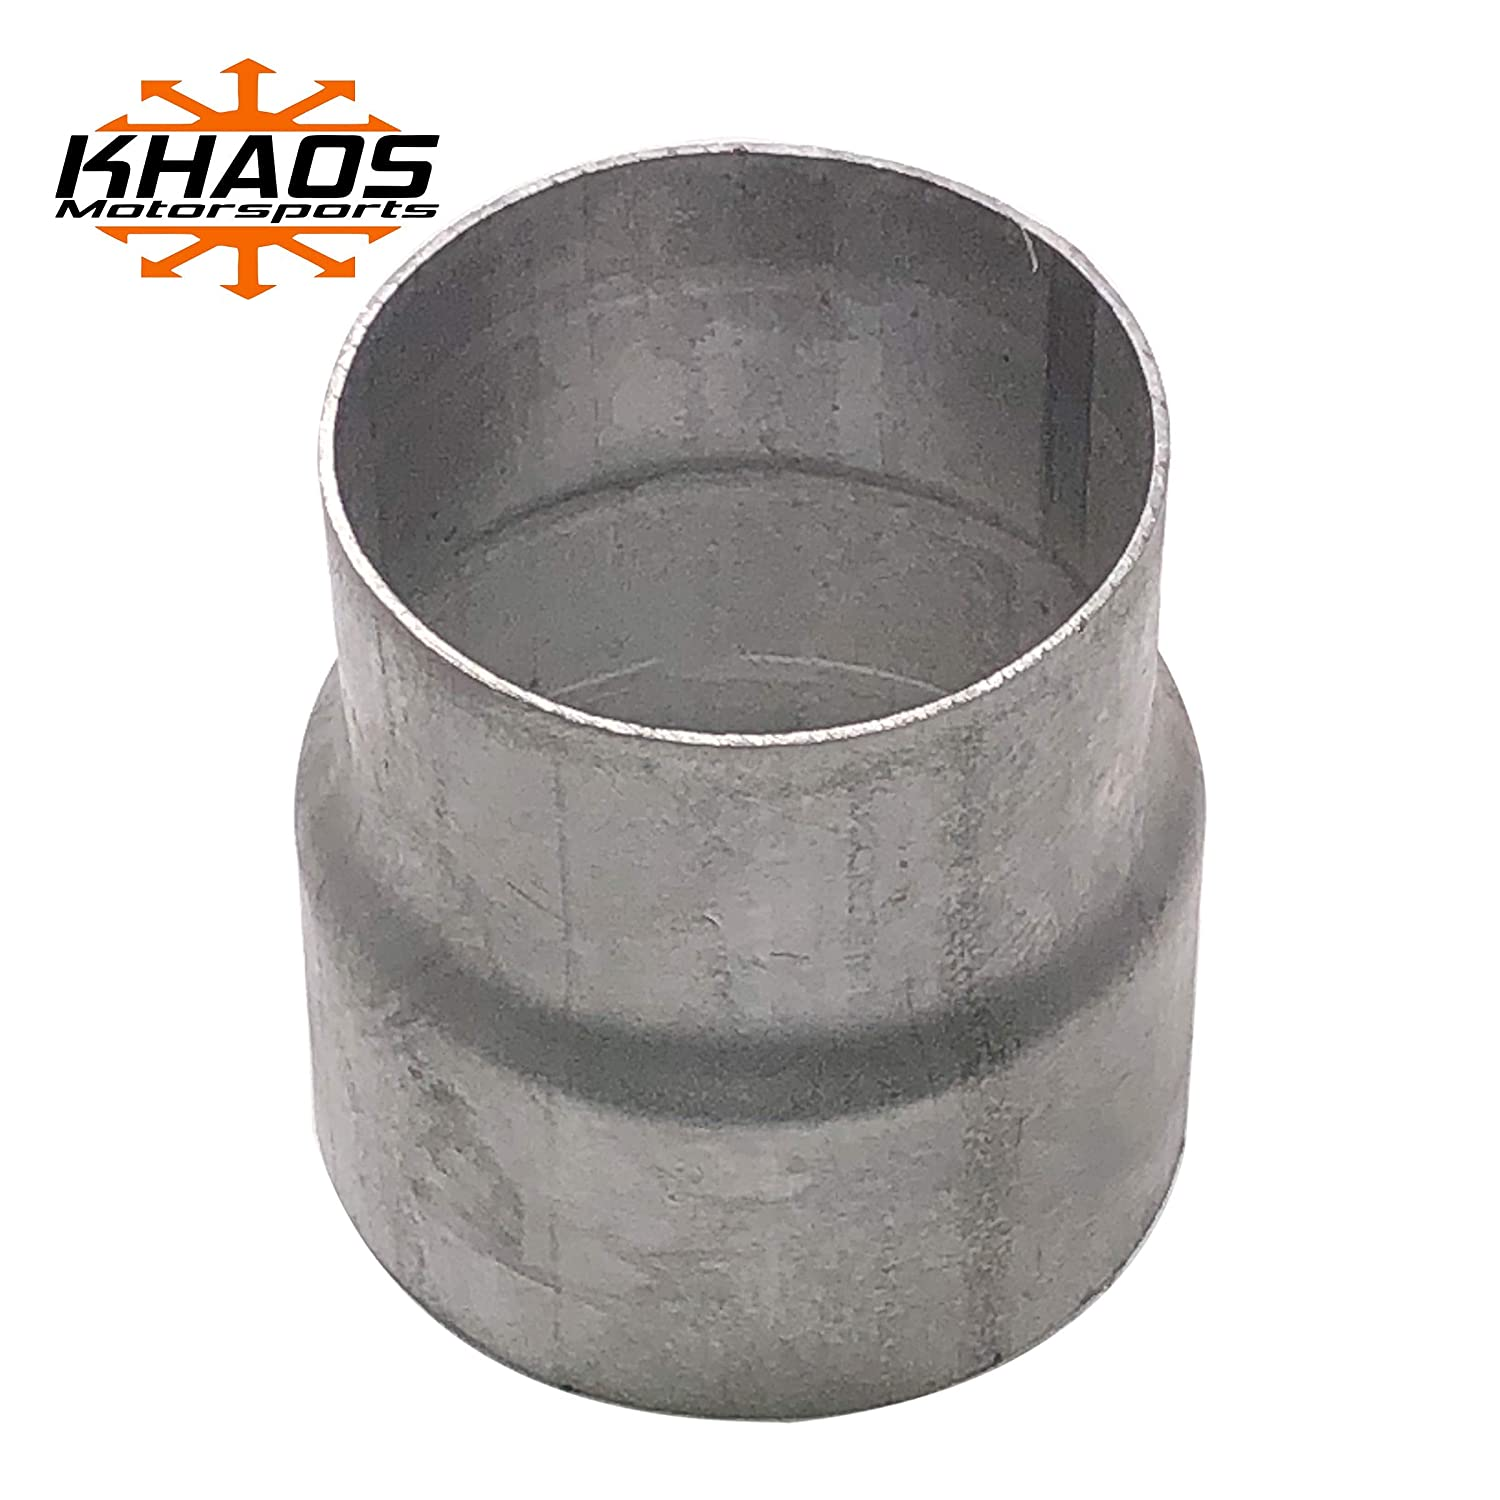 3 to 3.5 Exhaust Coupler Joiner Reducer Adapter